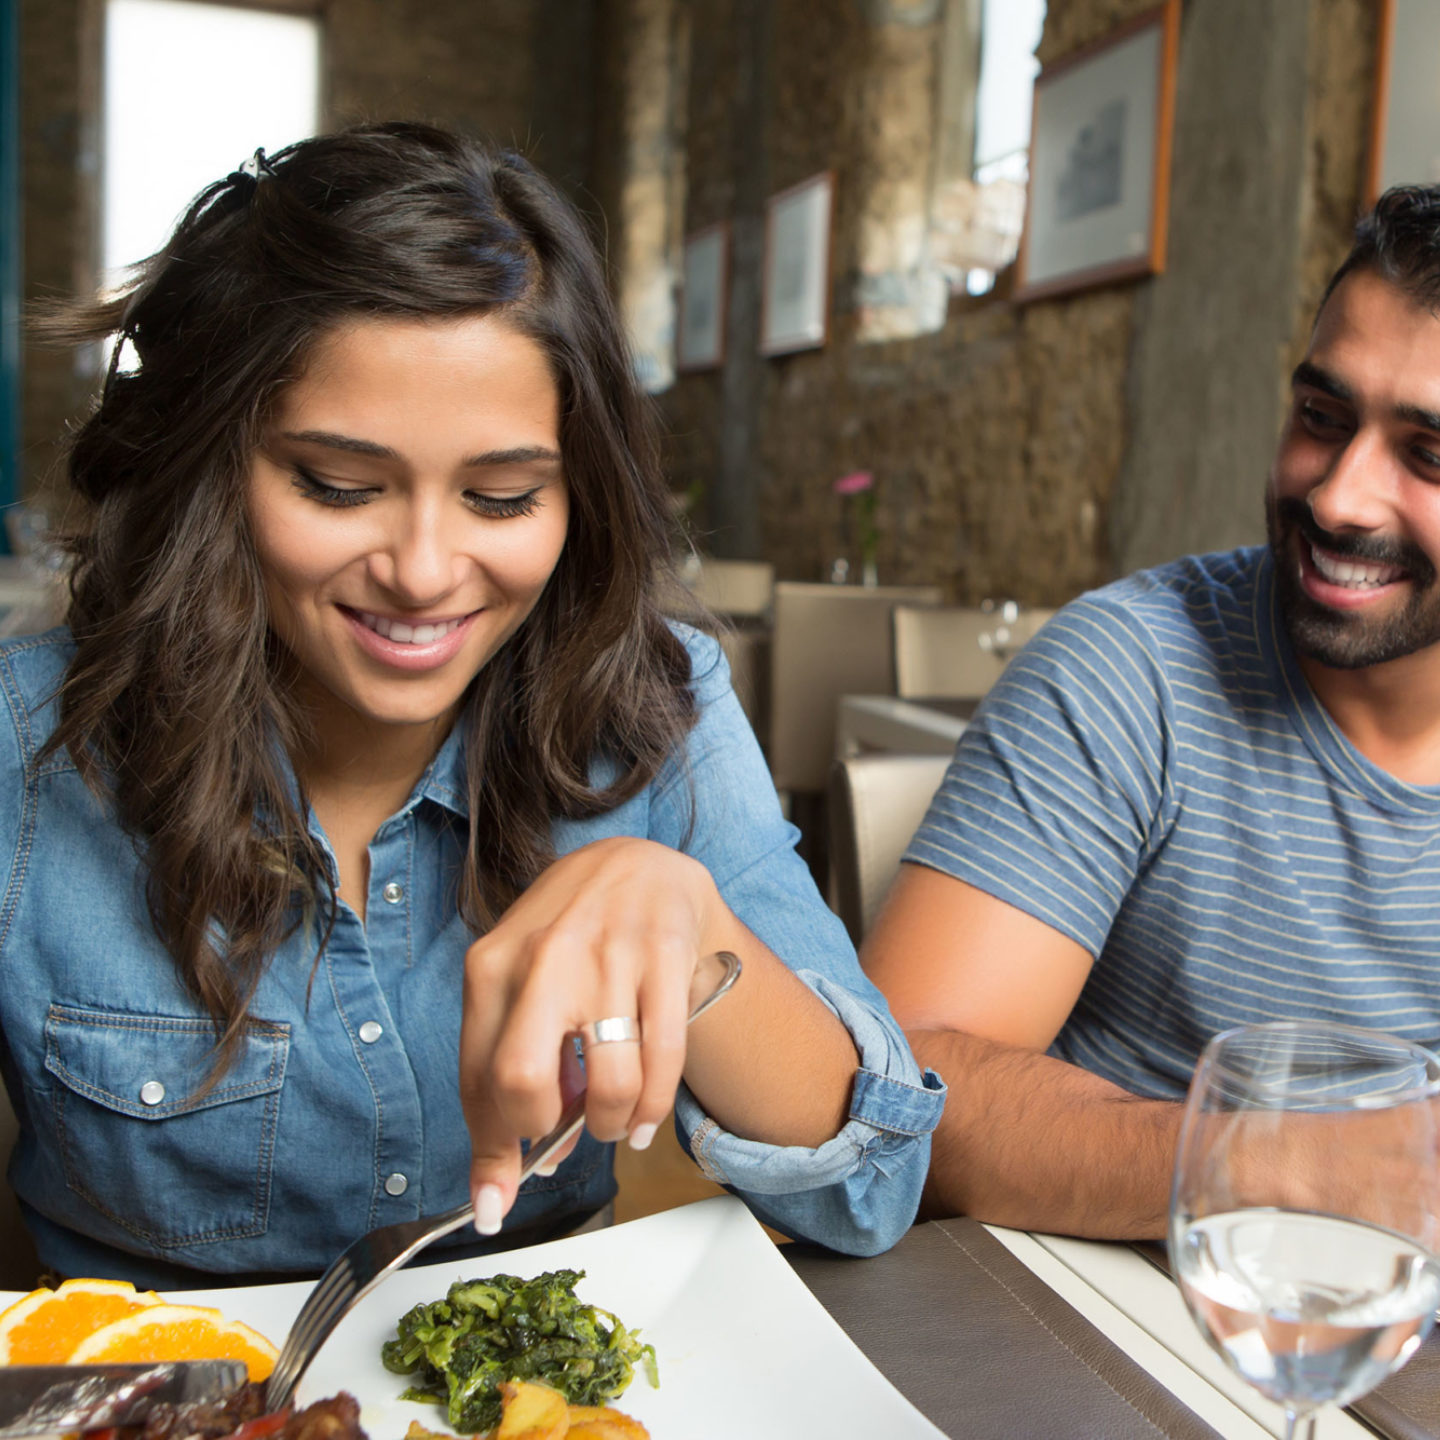 Man and woman eating in restaurant - Avoid Souring Your Sweet Day - Love our Valuable Tips   NSF International